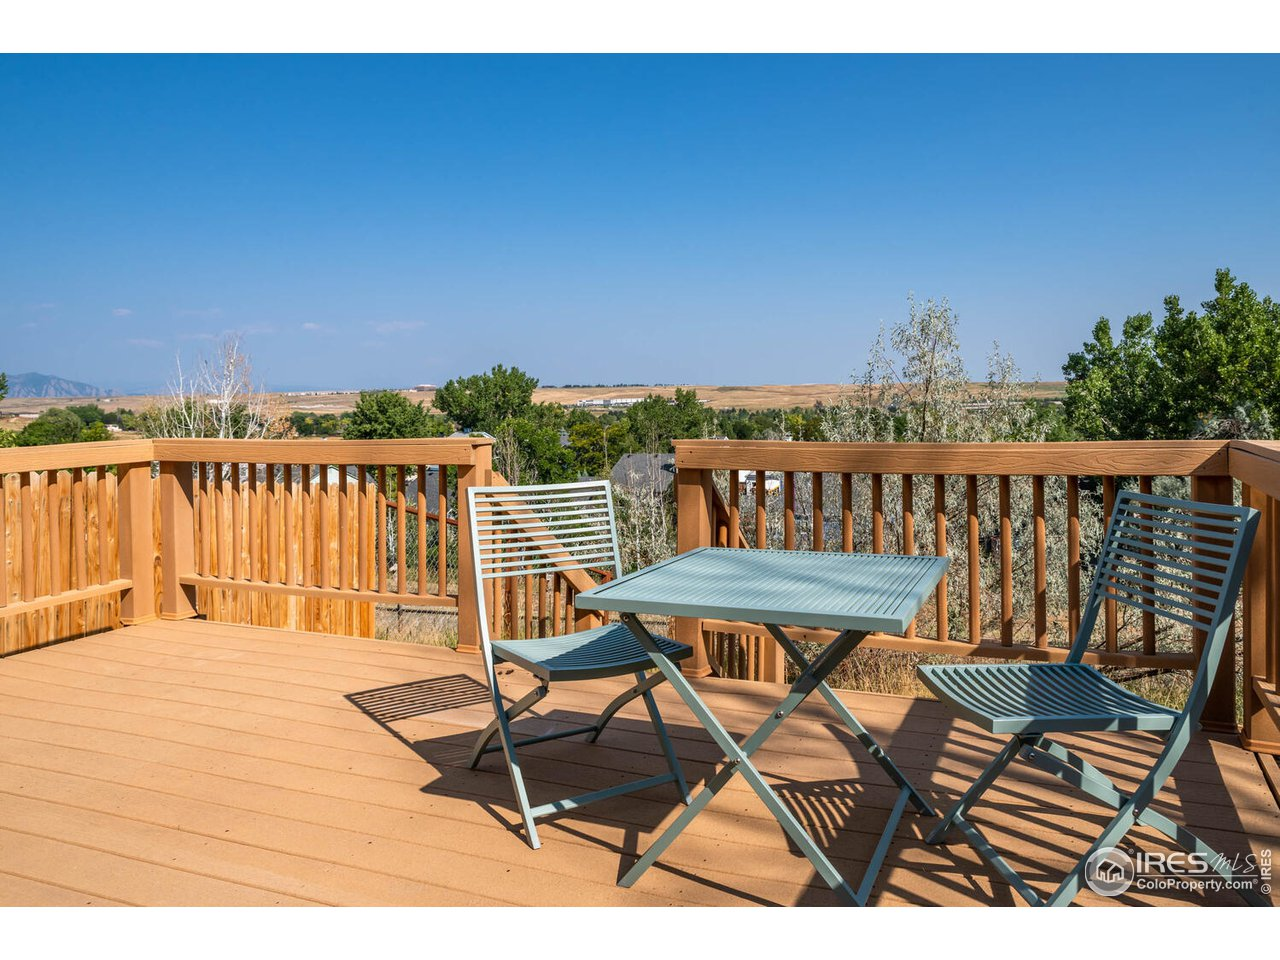 Large newer trex type deck with views